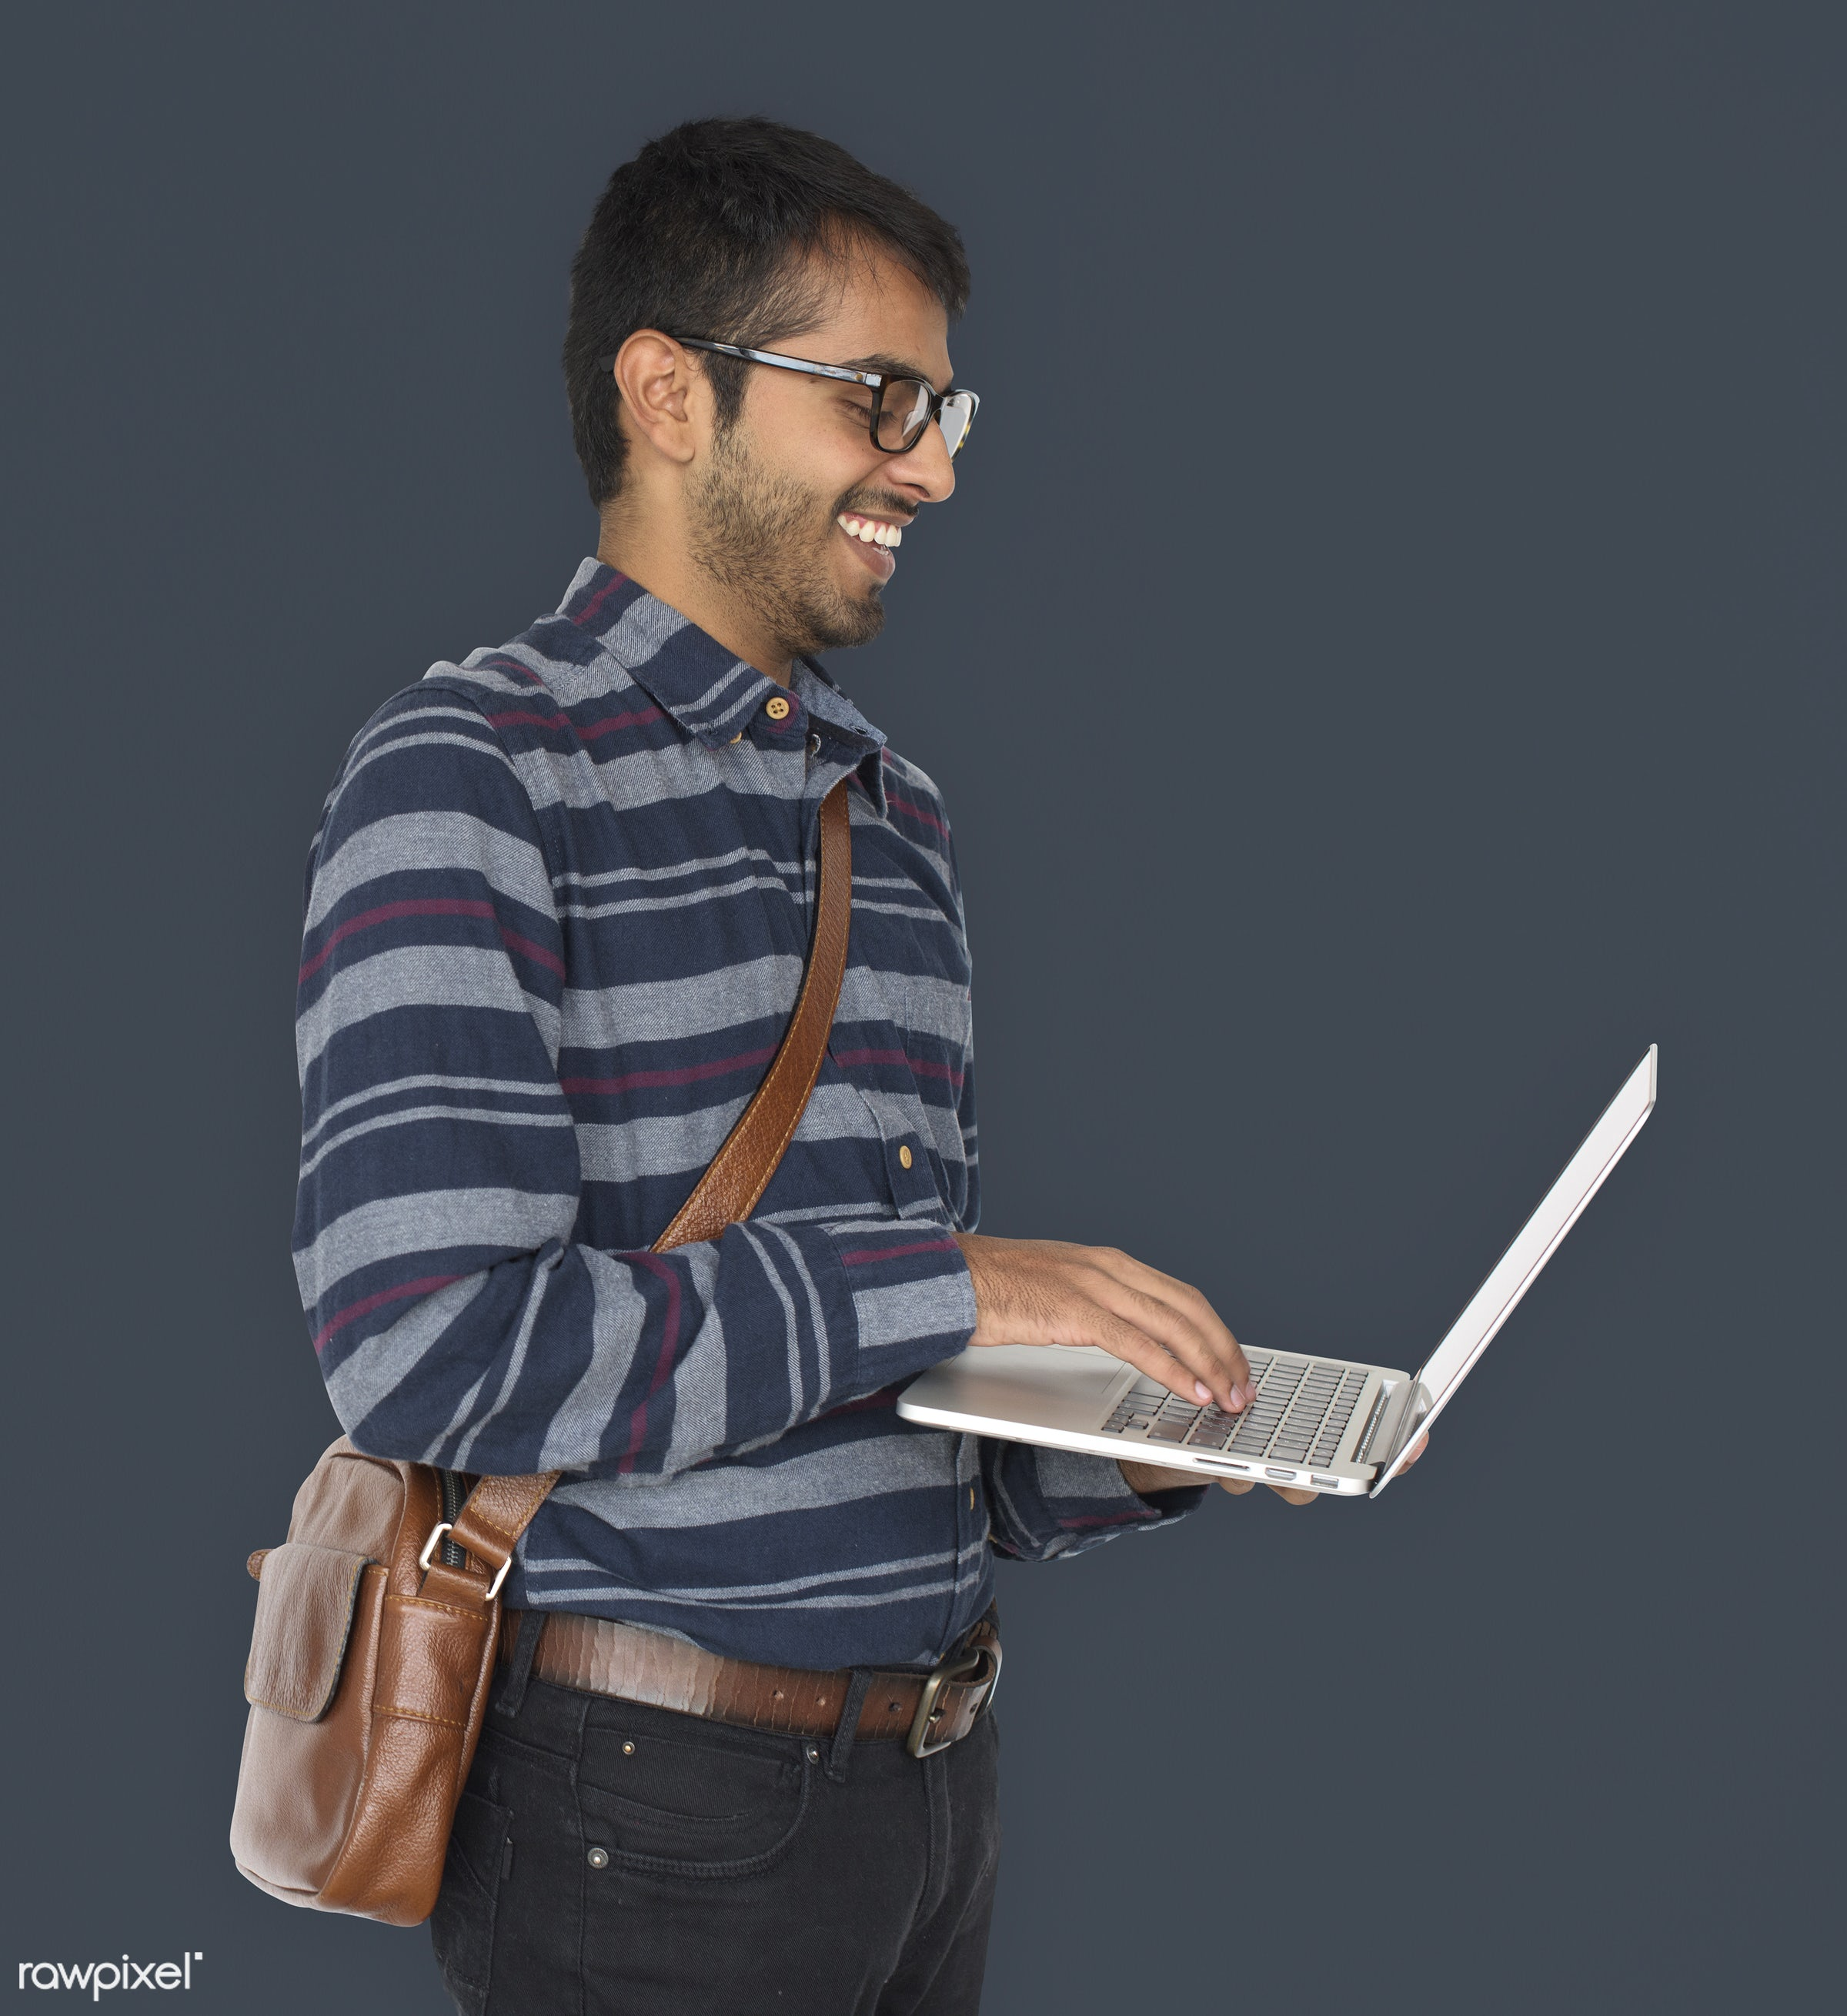 studio, expression, person, technology, holding, people, asian, lifestyle, laptop, positive, smile, cheerful, isolated,...